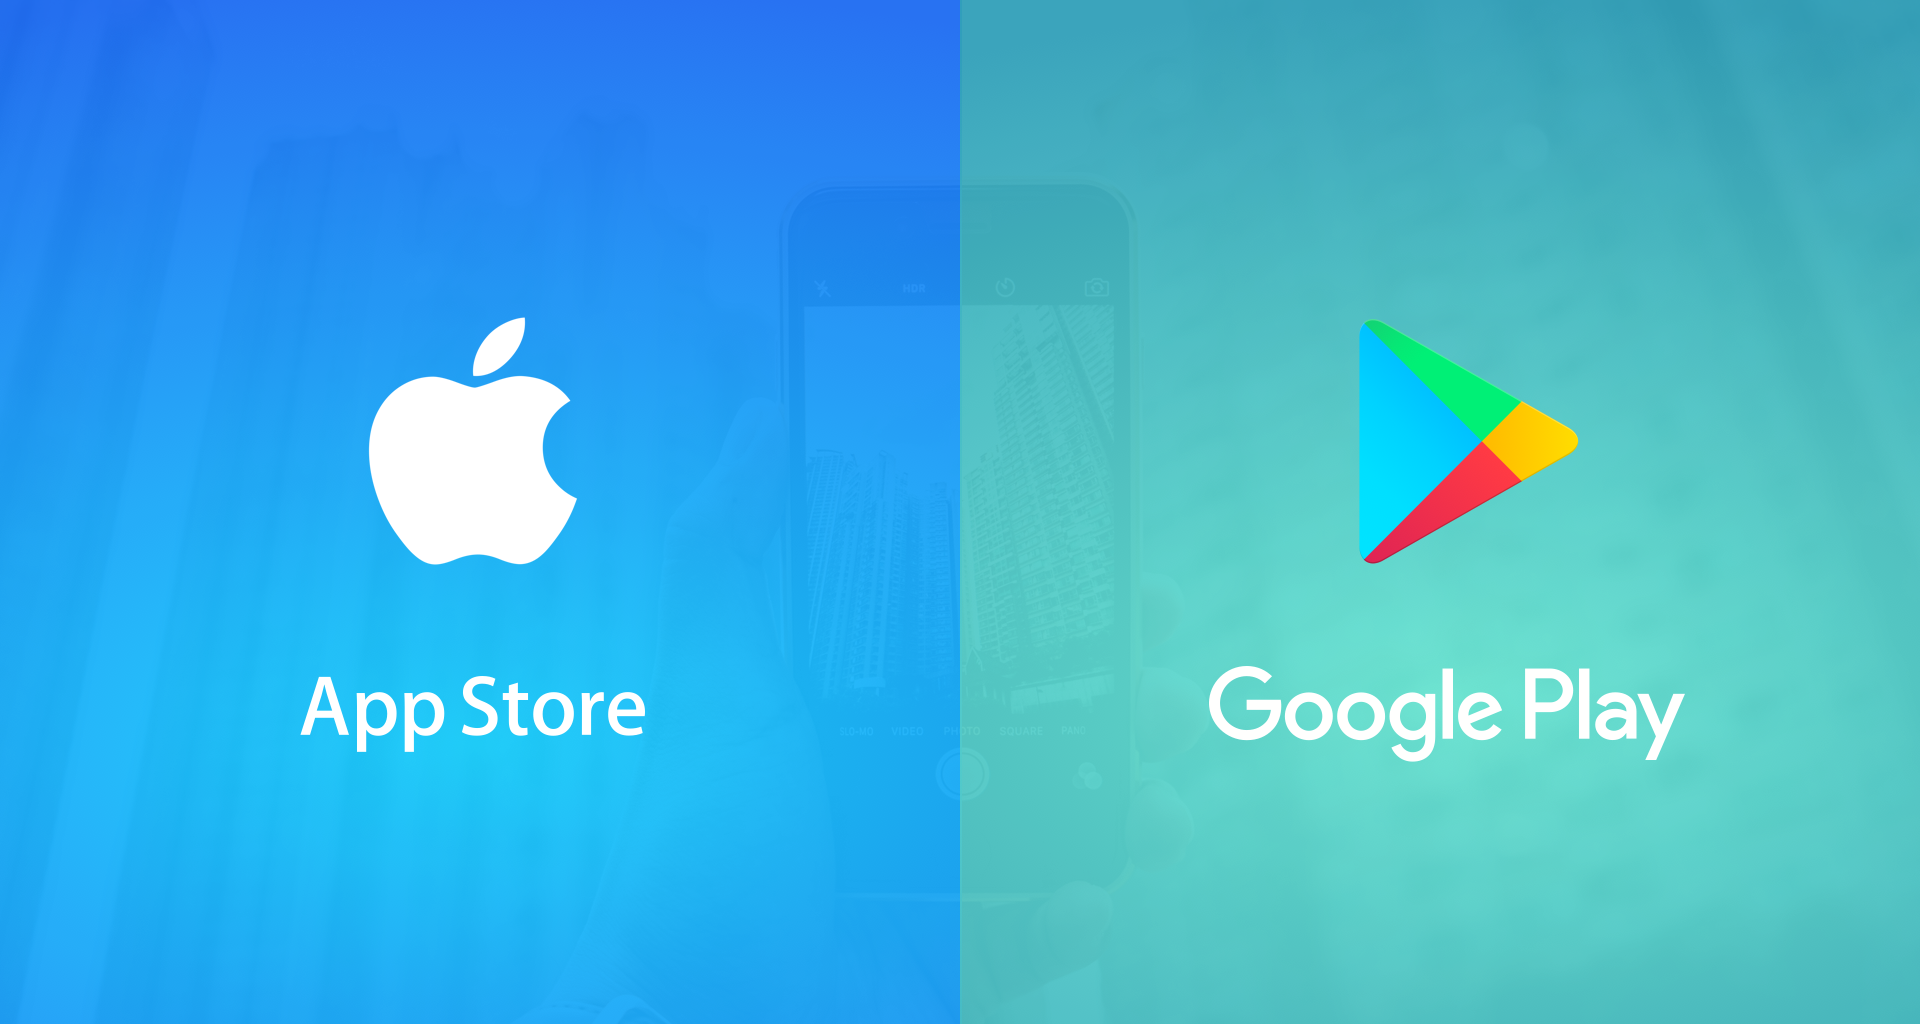 How To Get Your App Featured In The App Store And Google Play